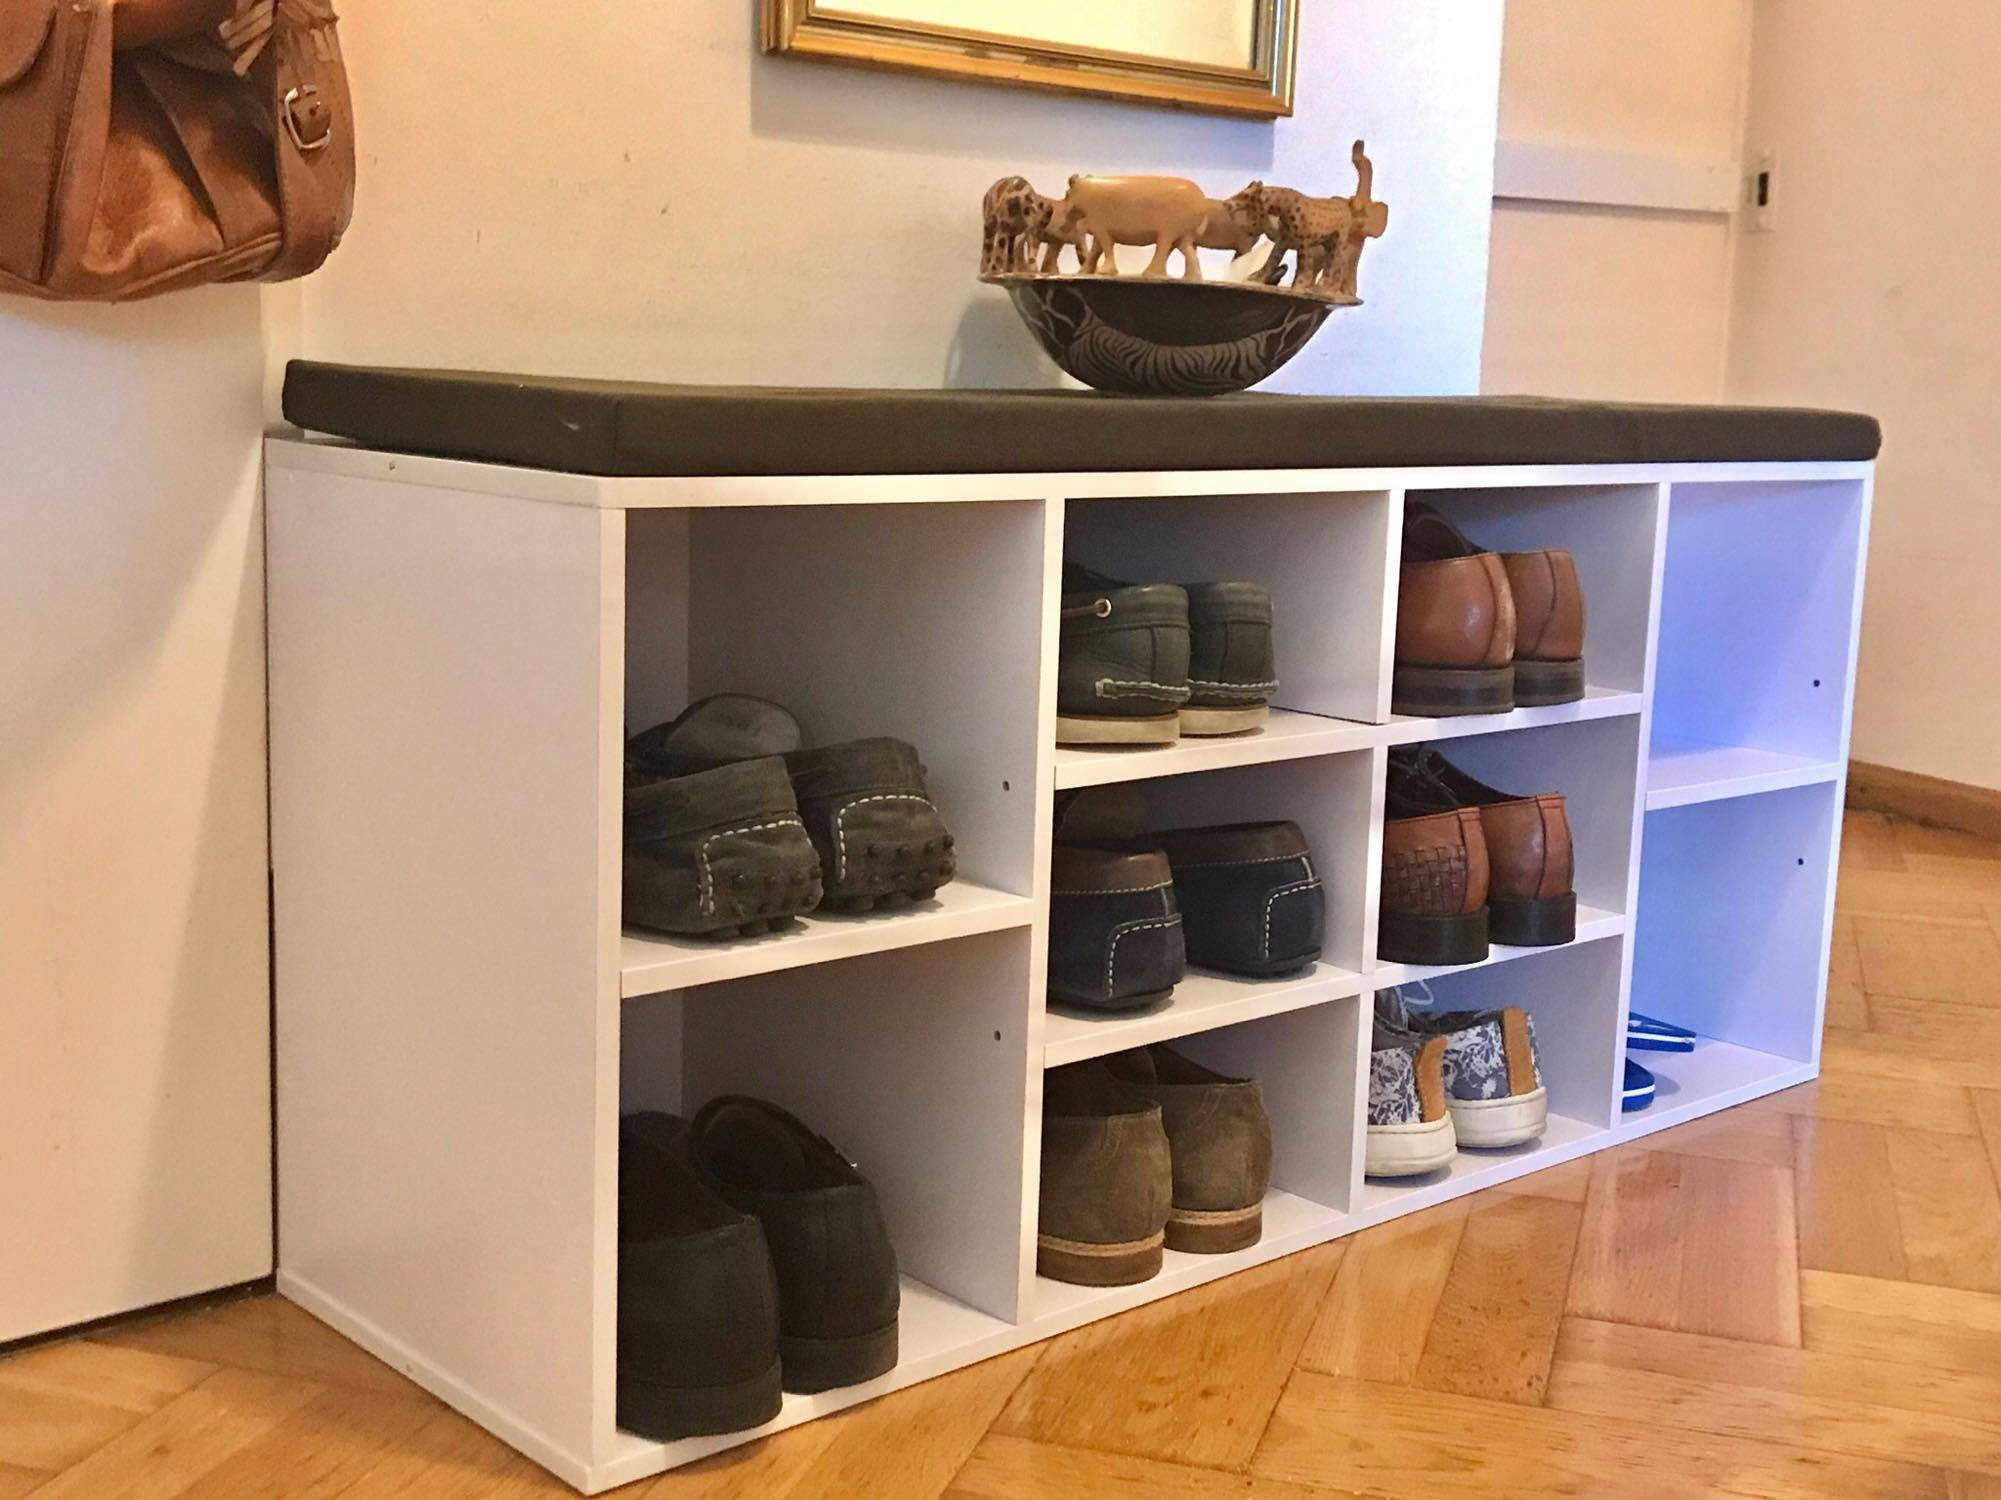 schuhregal kleiner flur free excellent schuhregal stehen white pine holz leder pad sitzbank. Black Bedroom Furniture Sets. Home Design Ideas